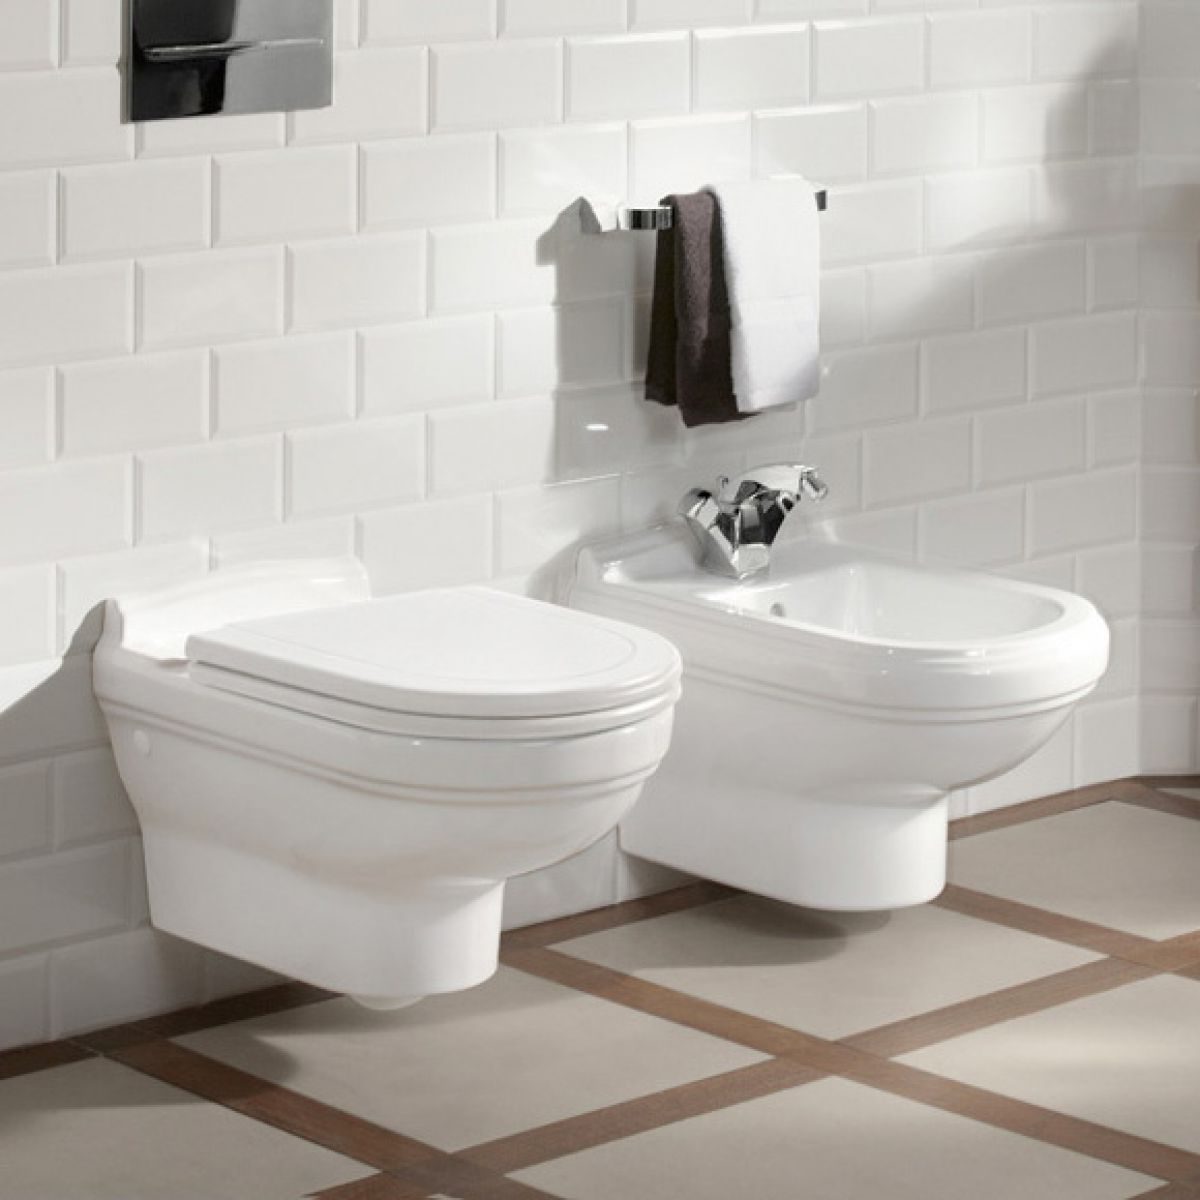 villeroy boch hommage wall hung toilet uk bathrooms. Black Bedroom Furniture Sets. Home Design Ideas